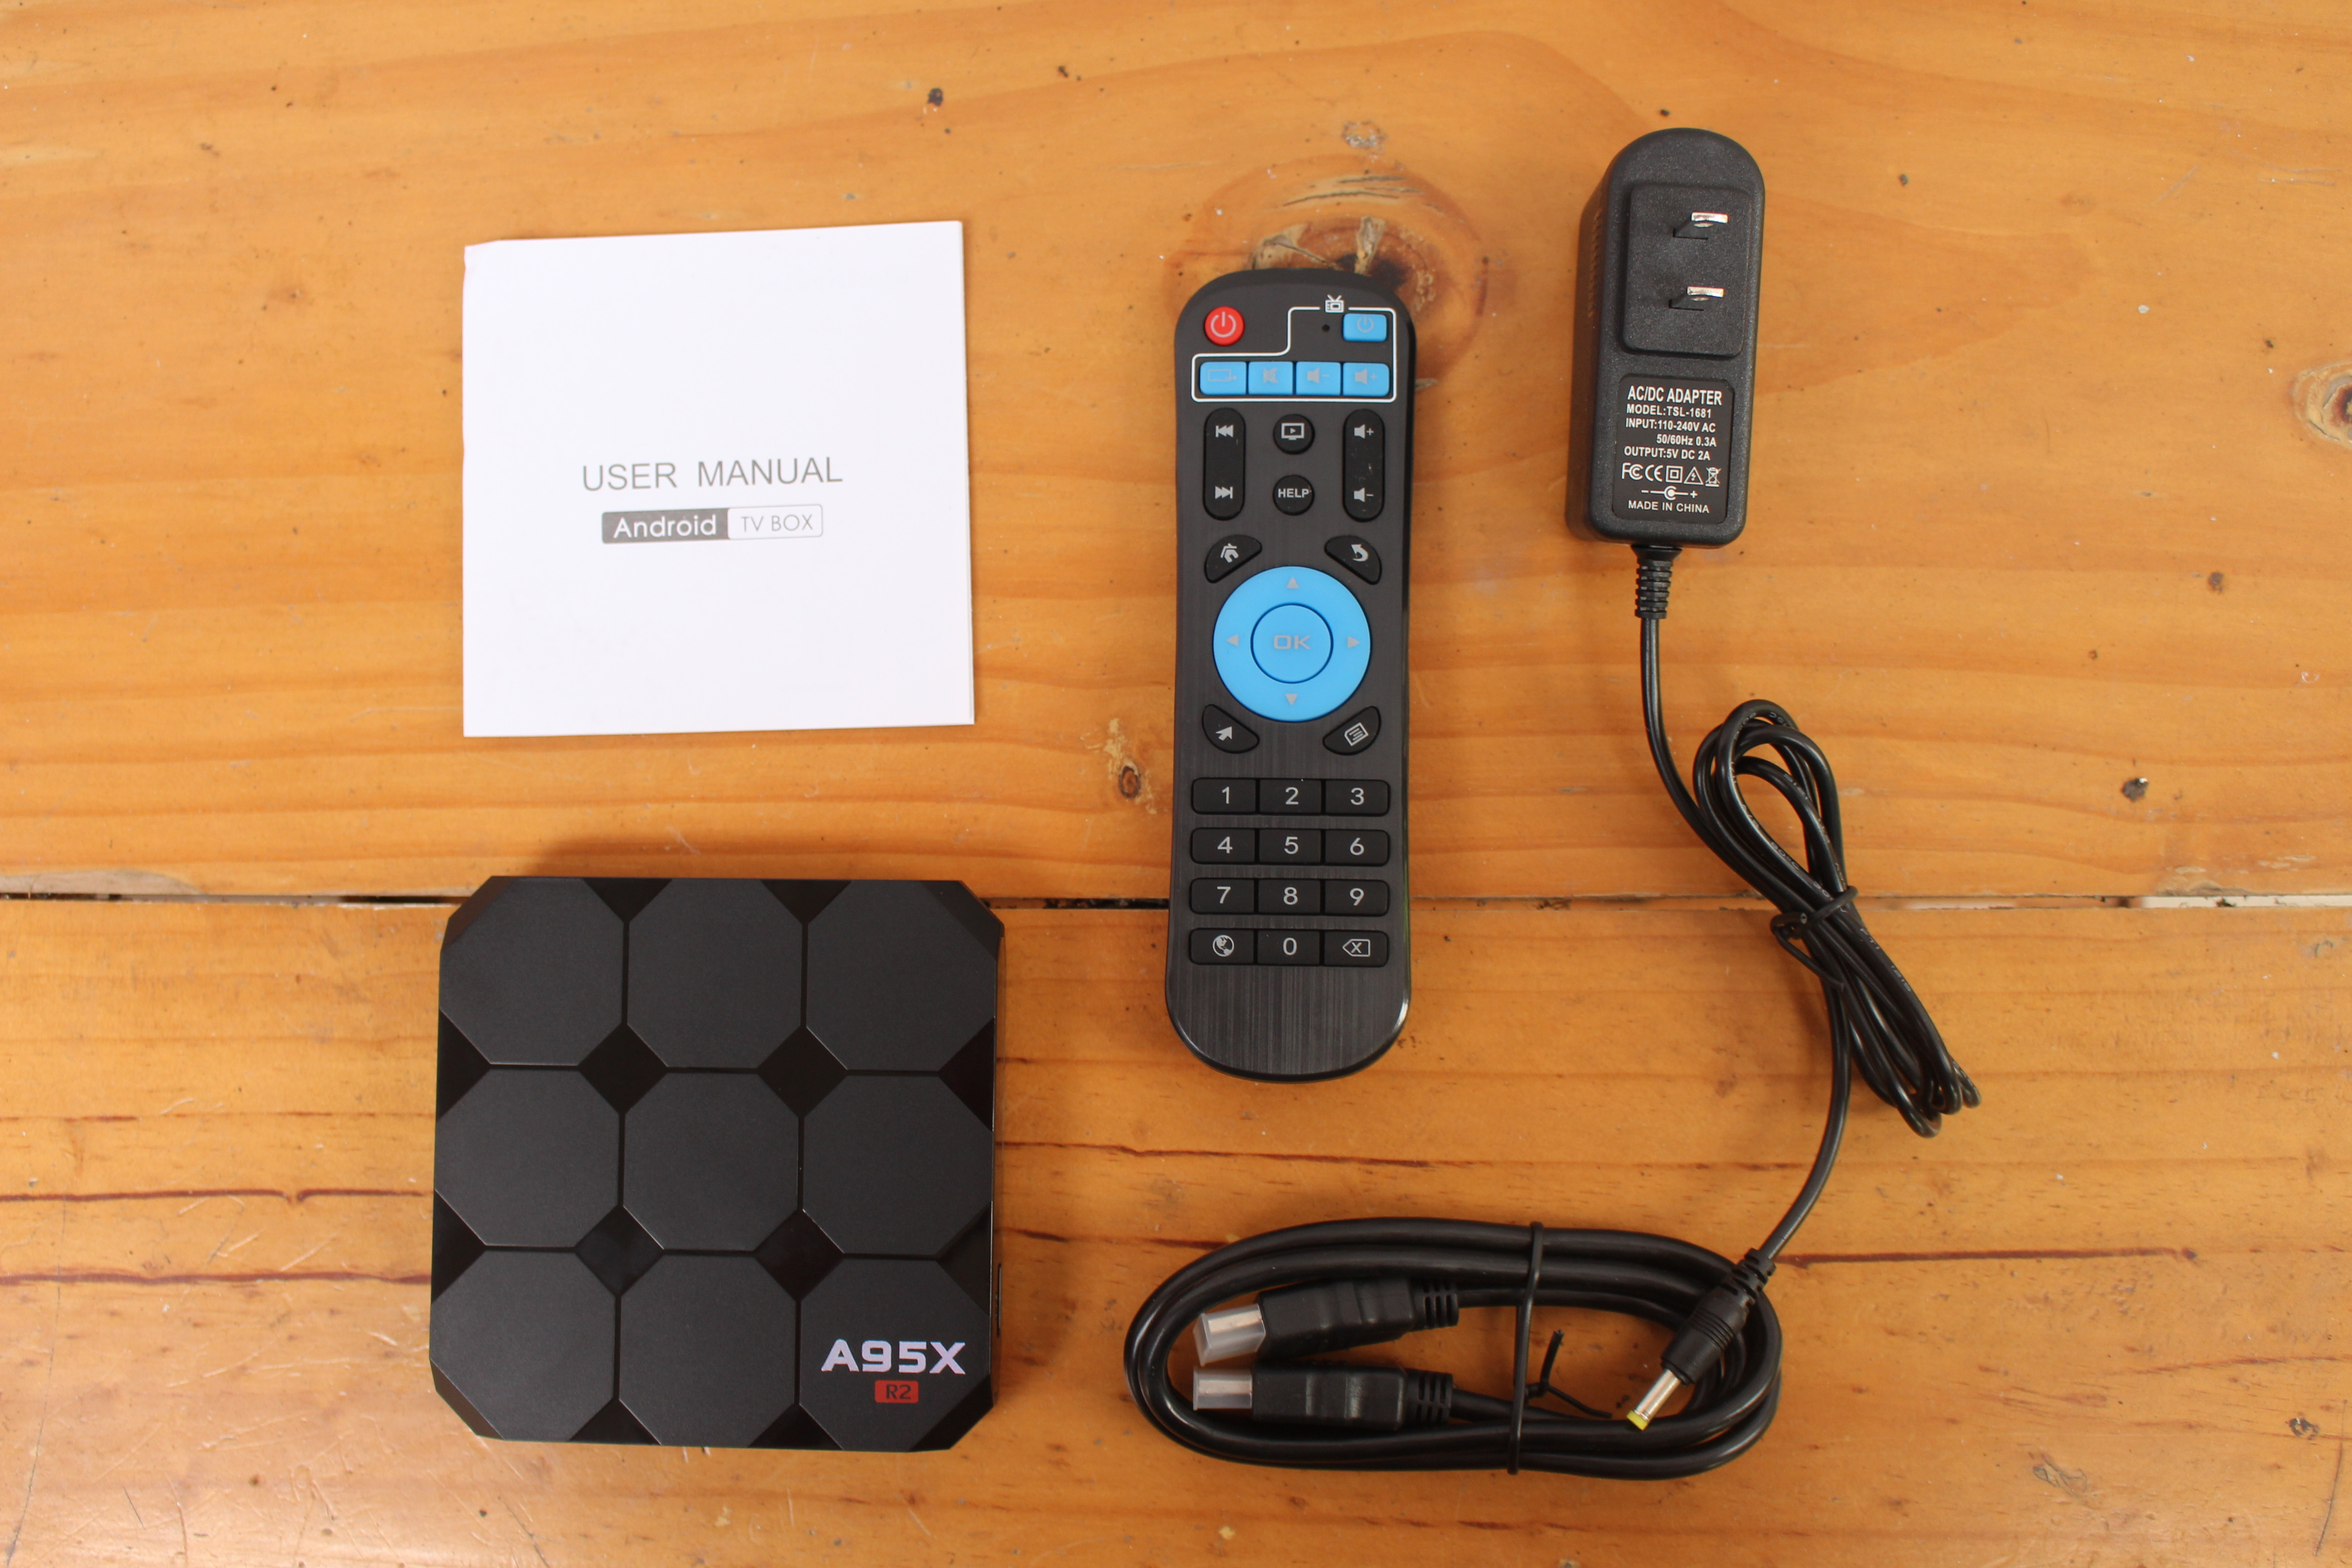 A95X R2 (Rockchip RK3328) TV Box Review - Part 1: Specifications